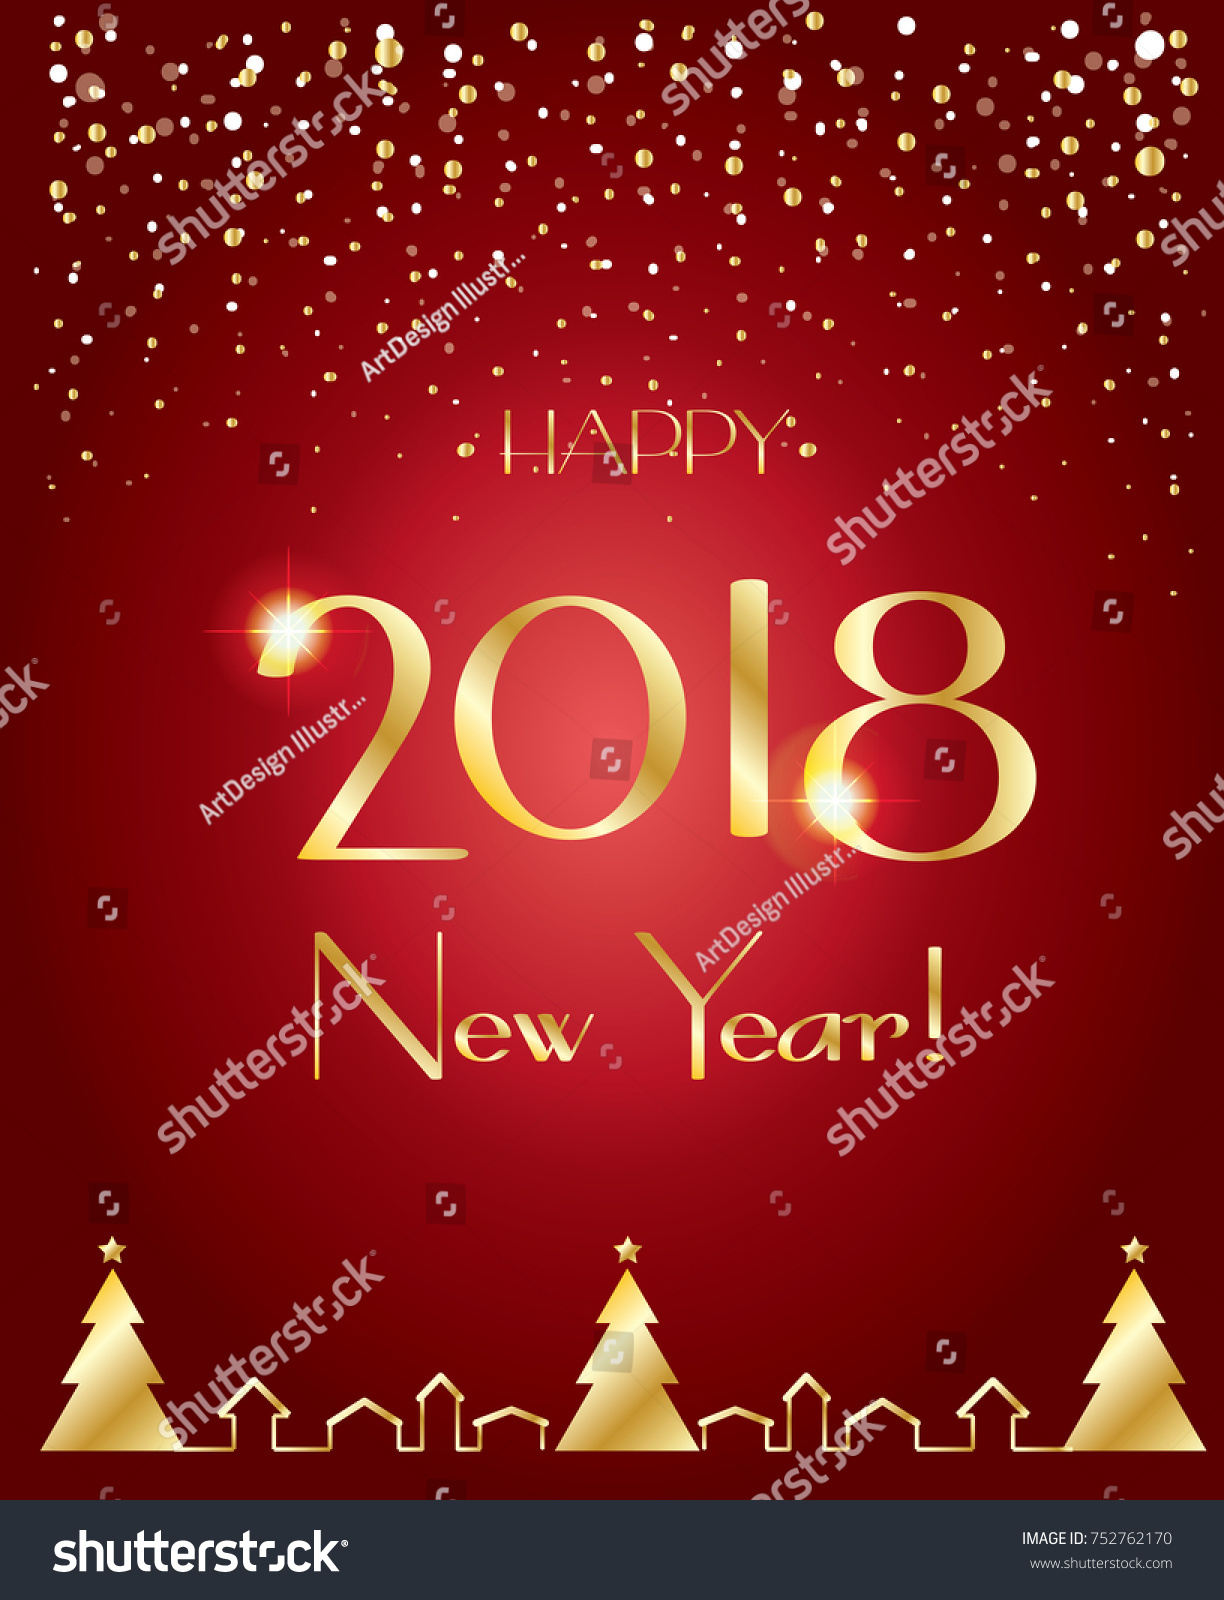 happy new year 2018 luxury greeting card elegant christmas decoration glitter gold snowflakes frame